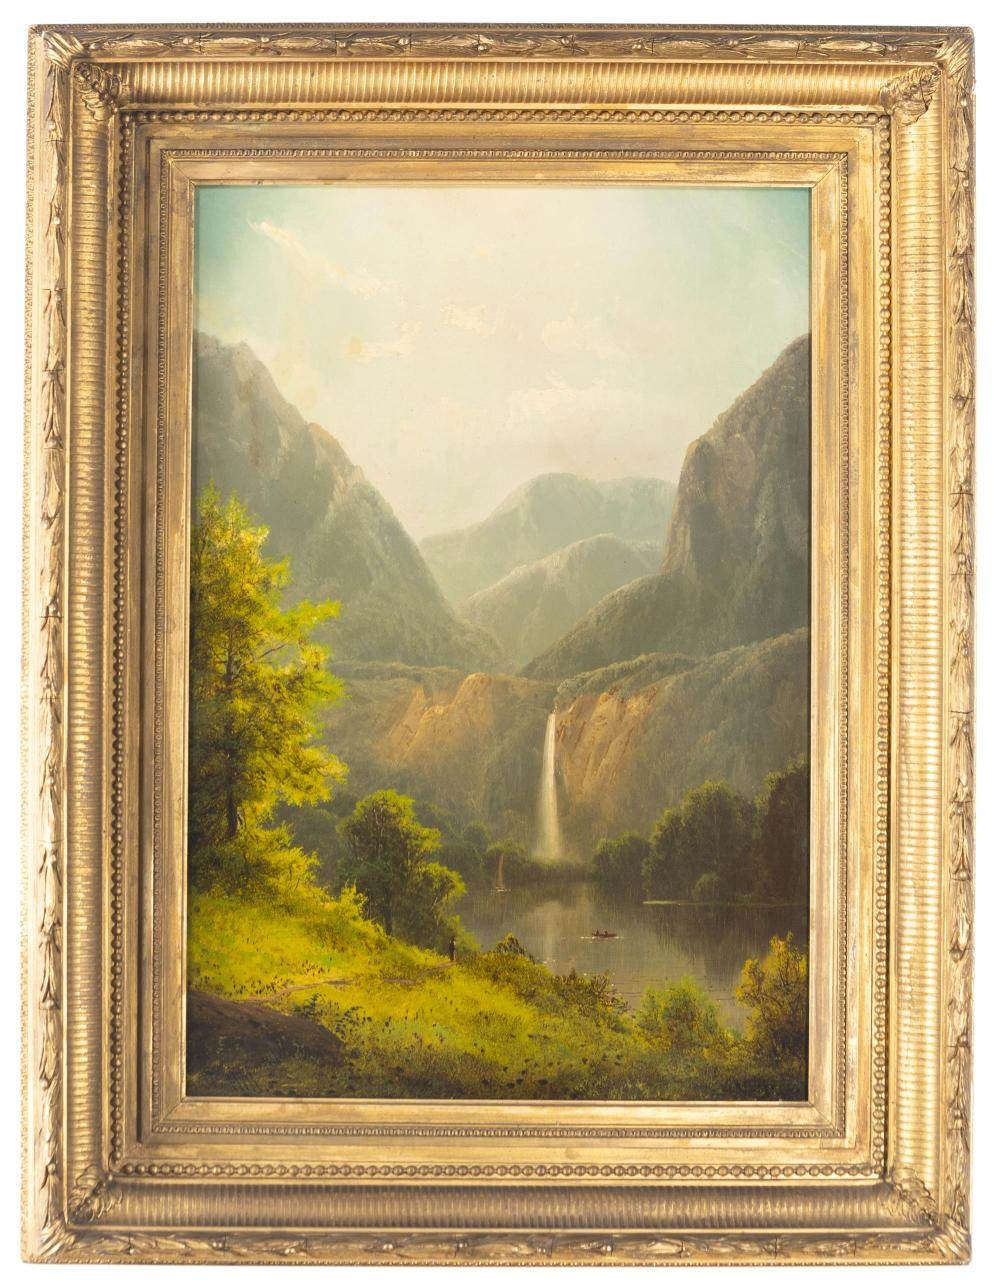 Thomas Hill, (1829-1908 Raymond, CA), Mountain landscape with waterfall, lake and figures, Oil on canvas, 20